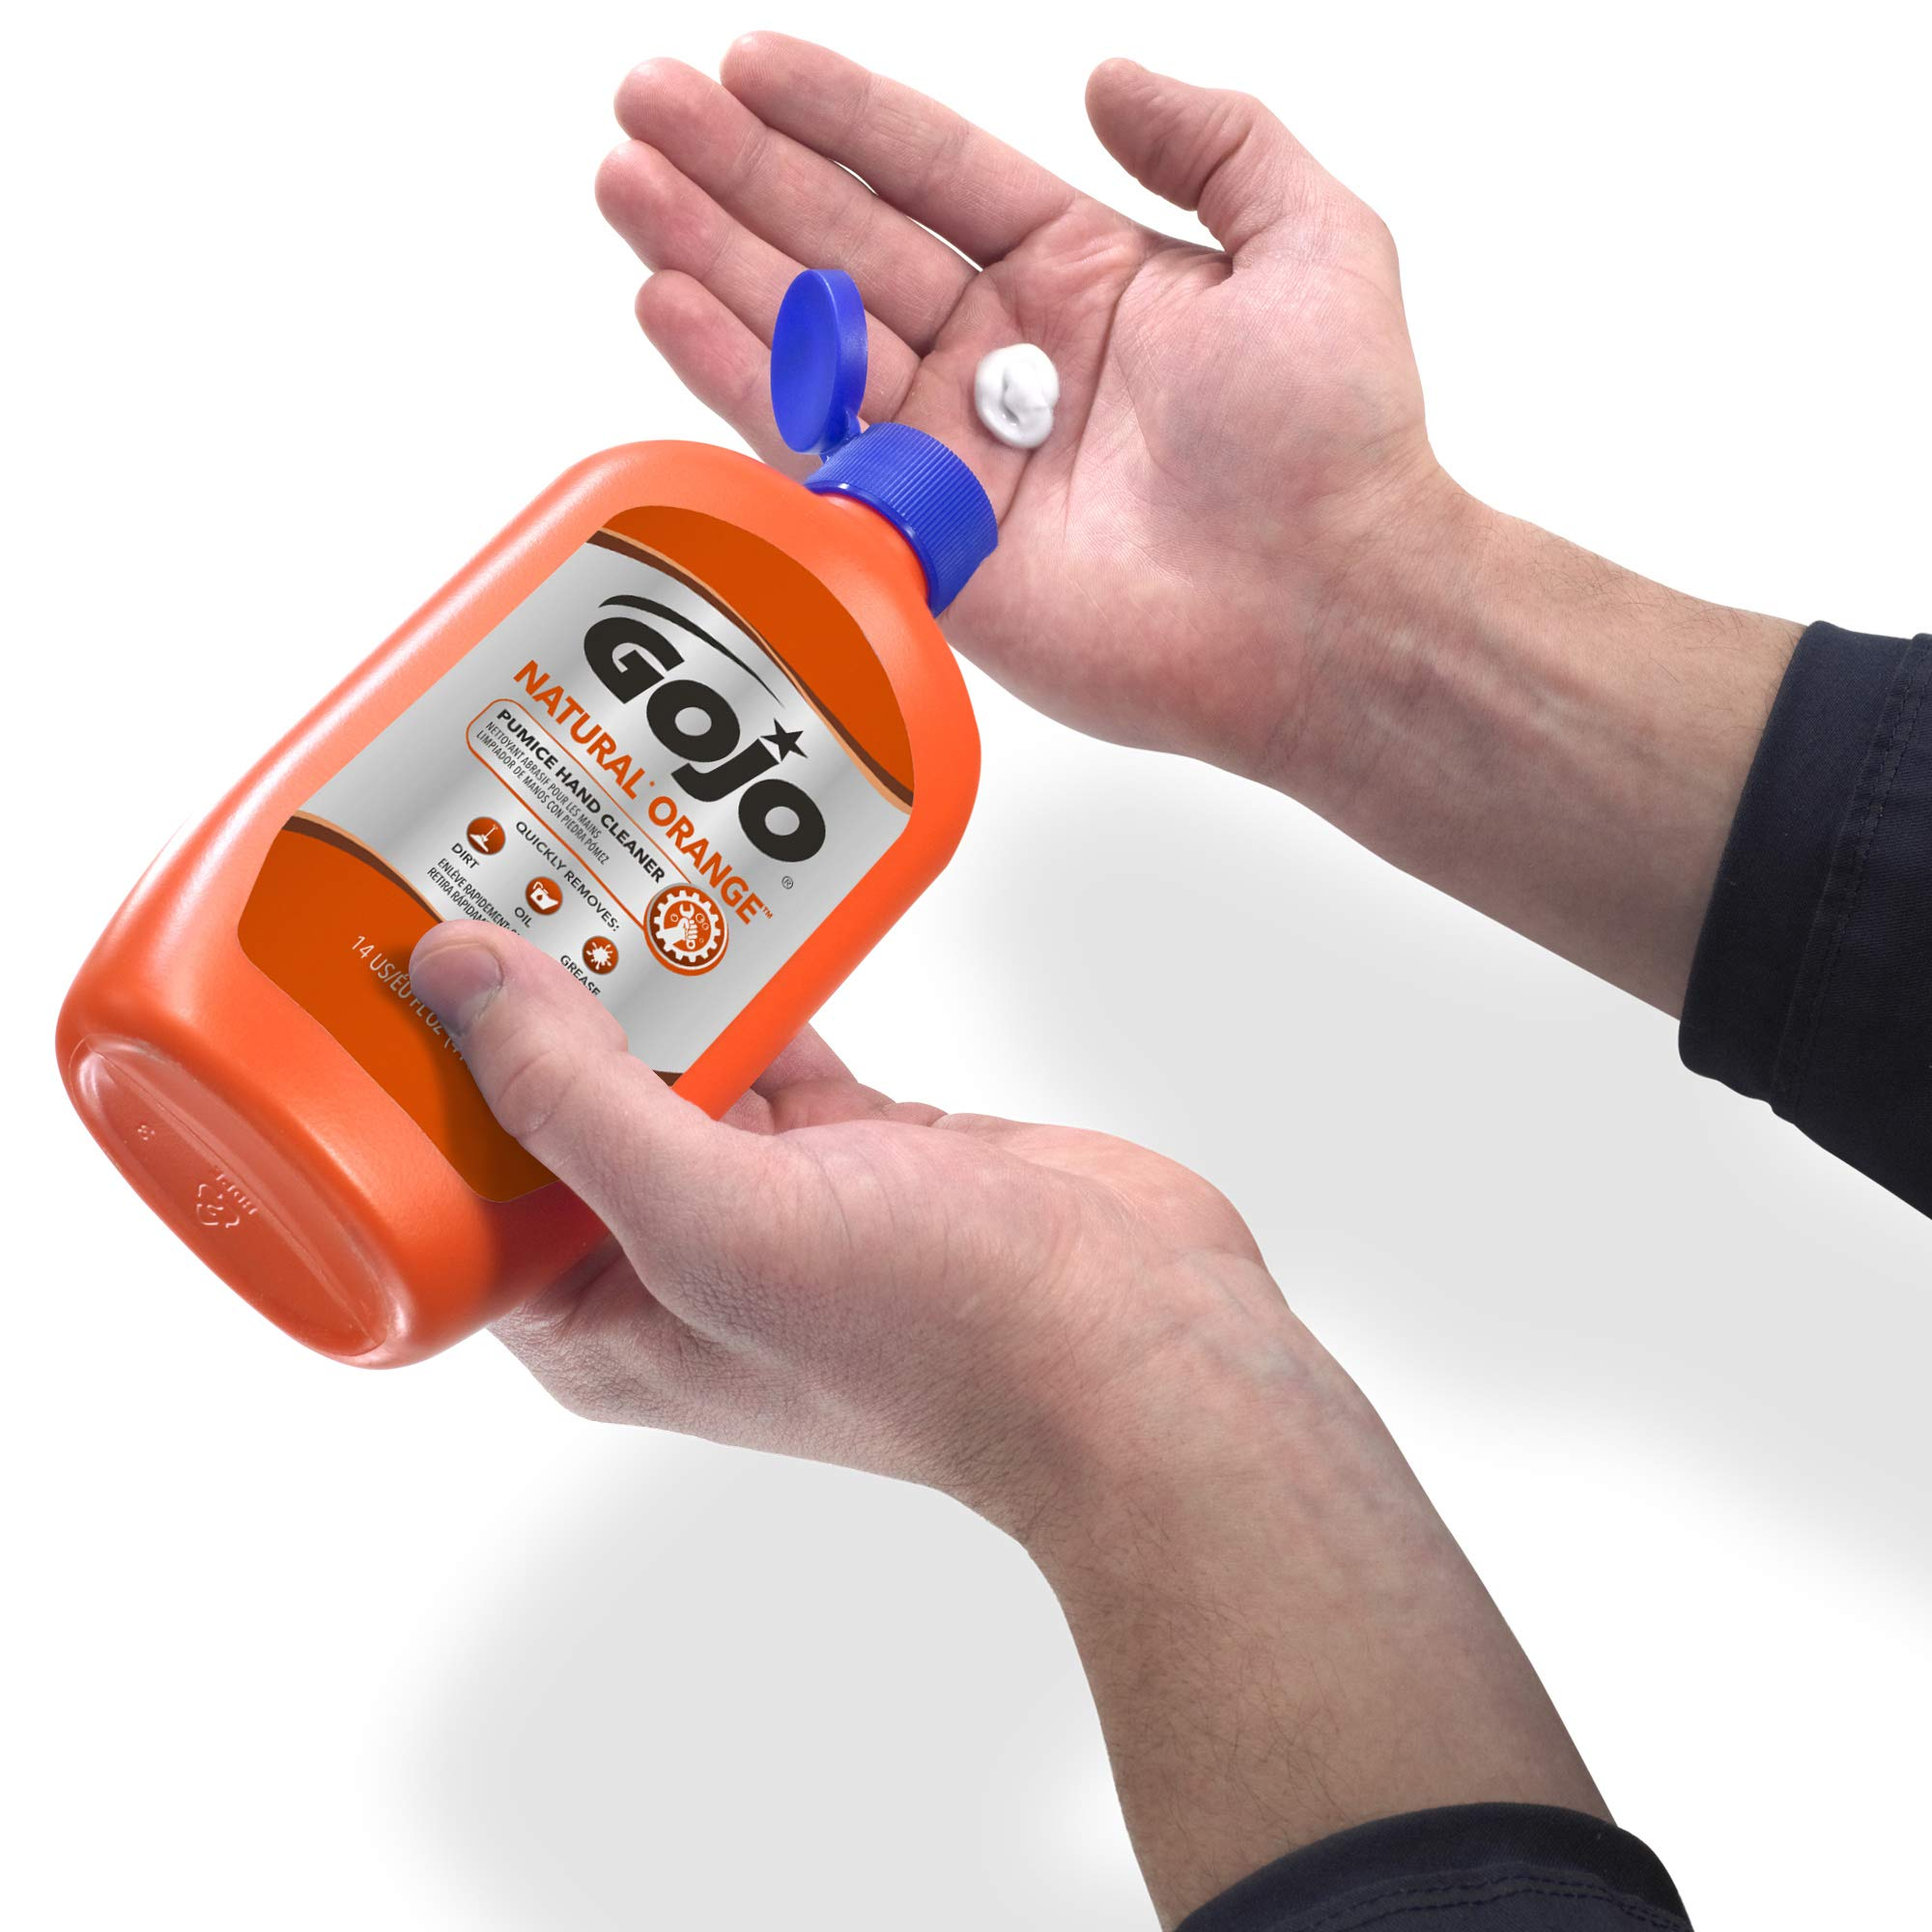 GOJO NATURAL ORANGE Pumice Hand Cleaner, 14 fl oz Quick-Acting Lotion Hand Cleaner Flip Cap Squeeze Bottles (Case of 12) - 0957-12 by Gojo (Image #5)